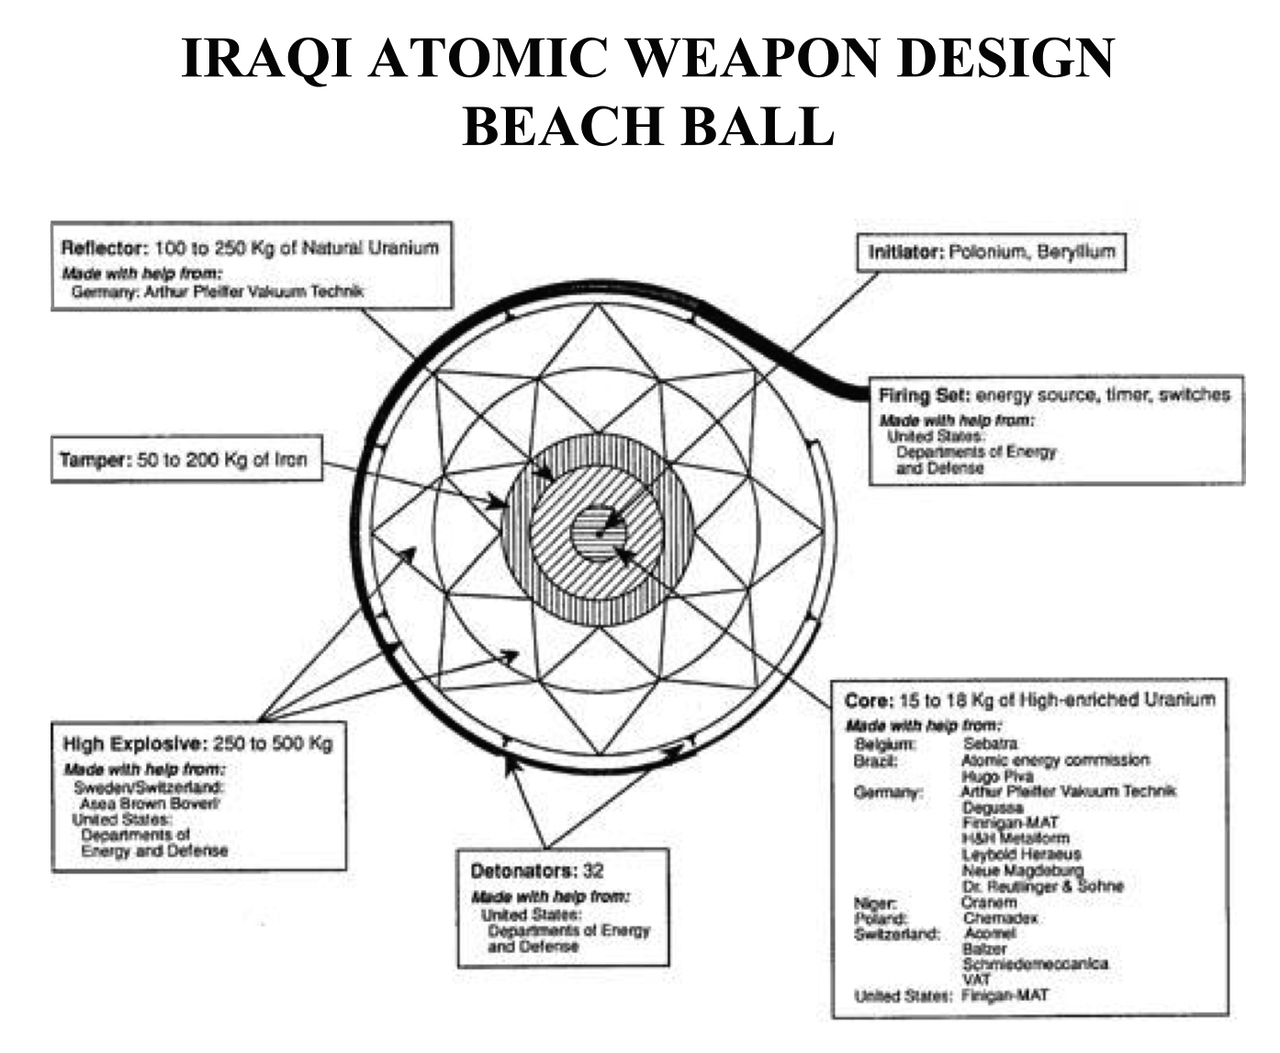 IRAQI ATOMIC WEAPON DESIGN BEACH BALL